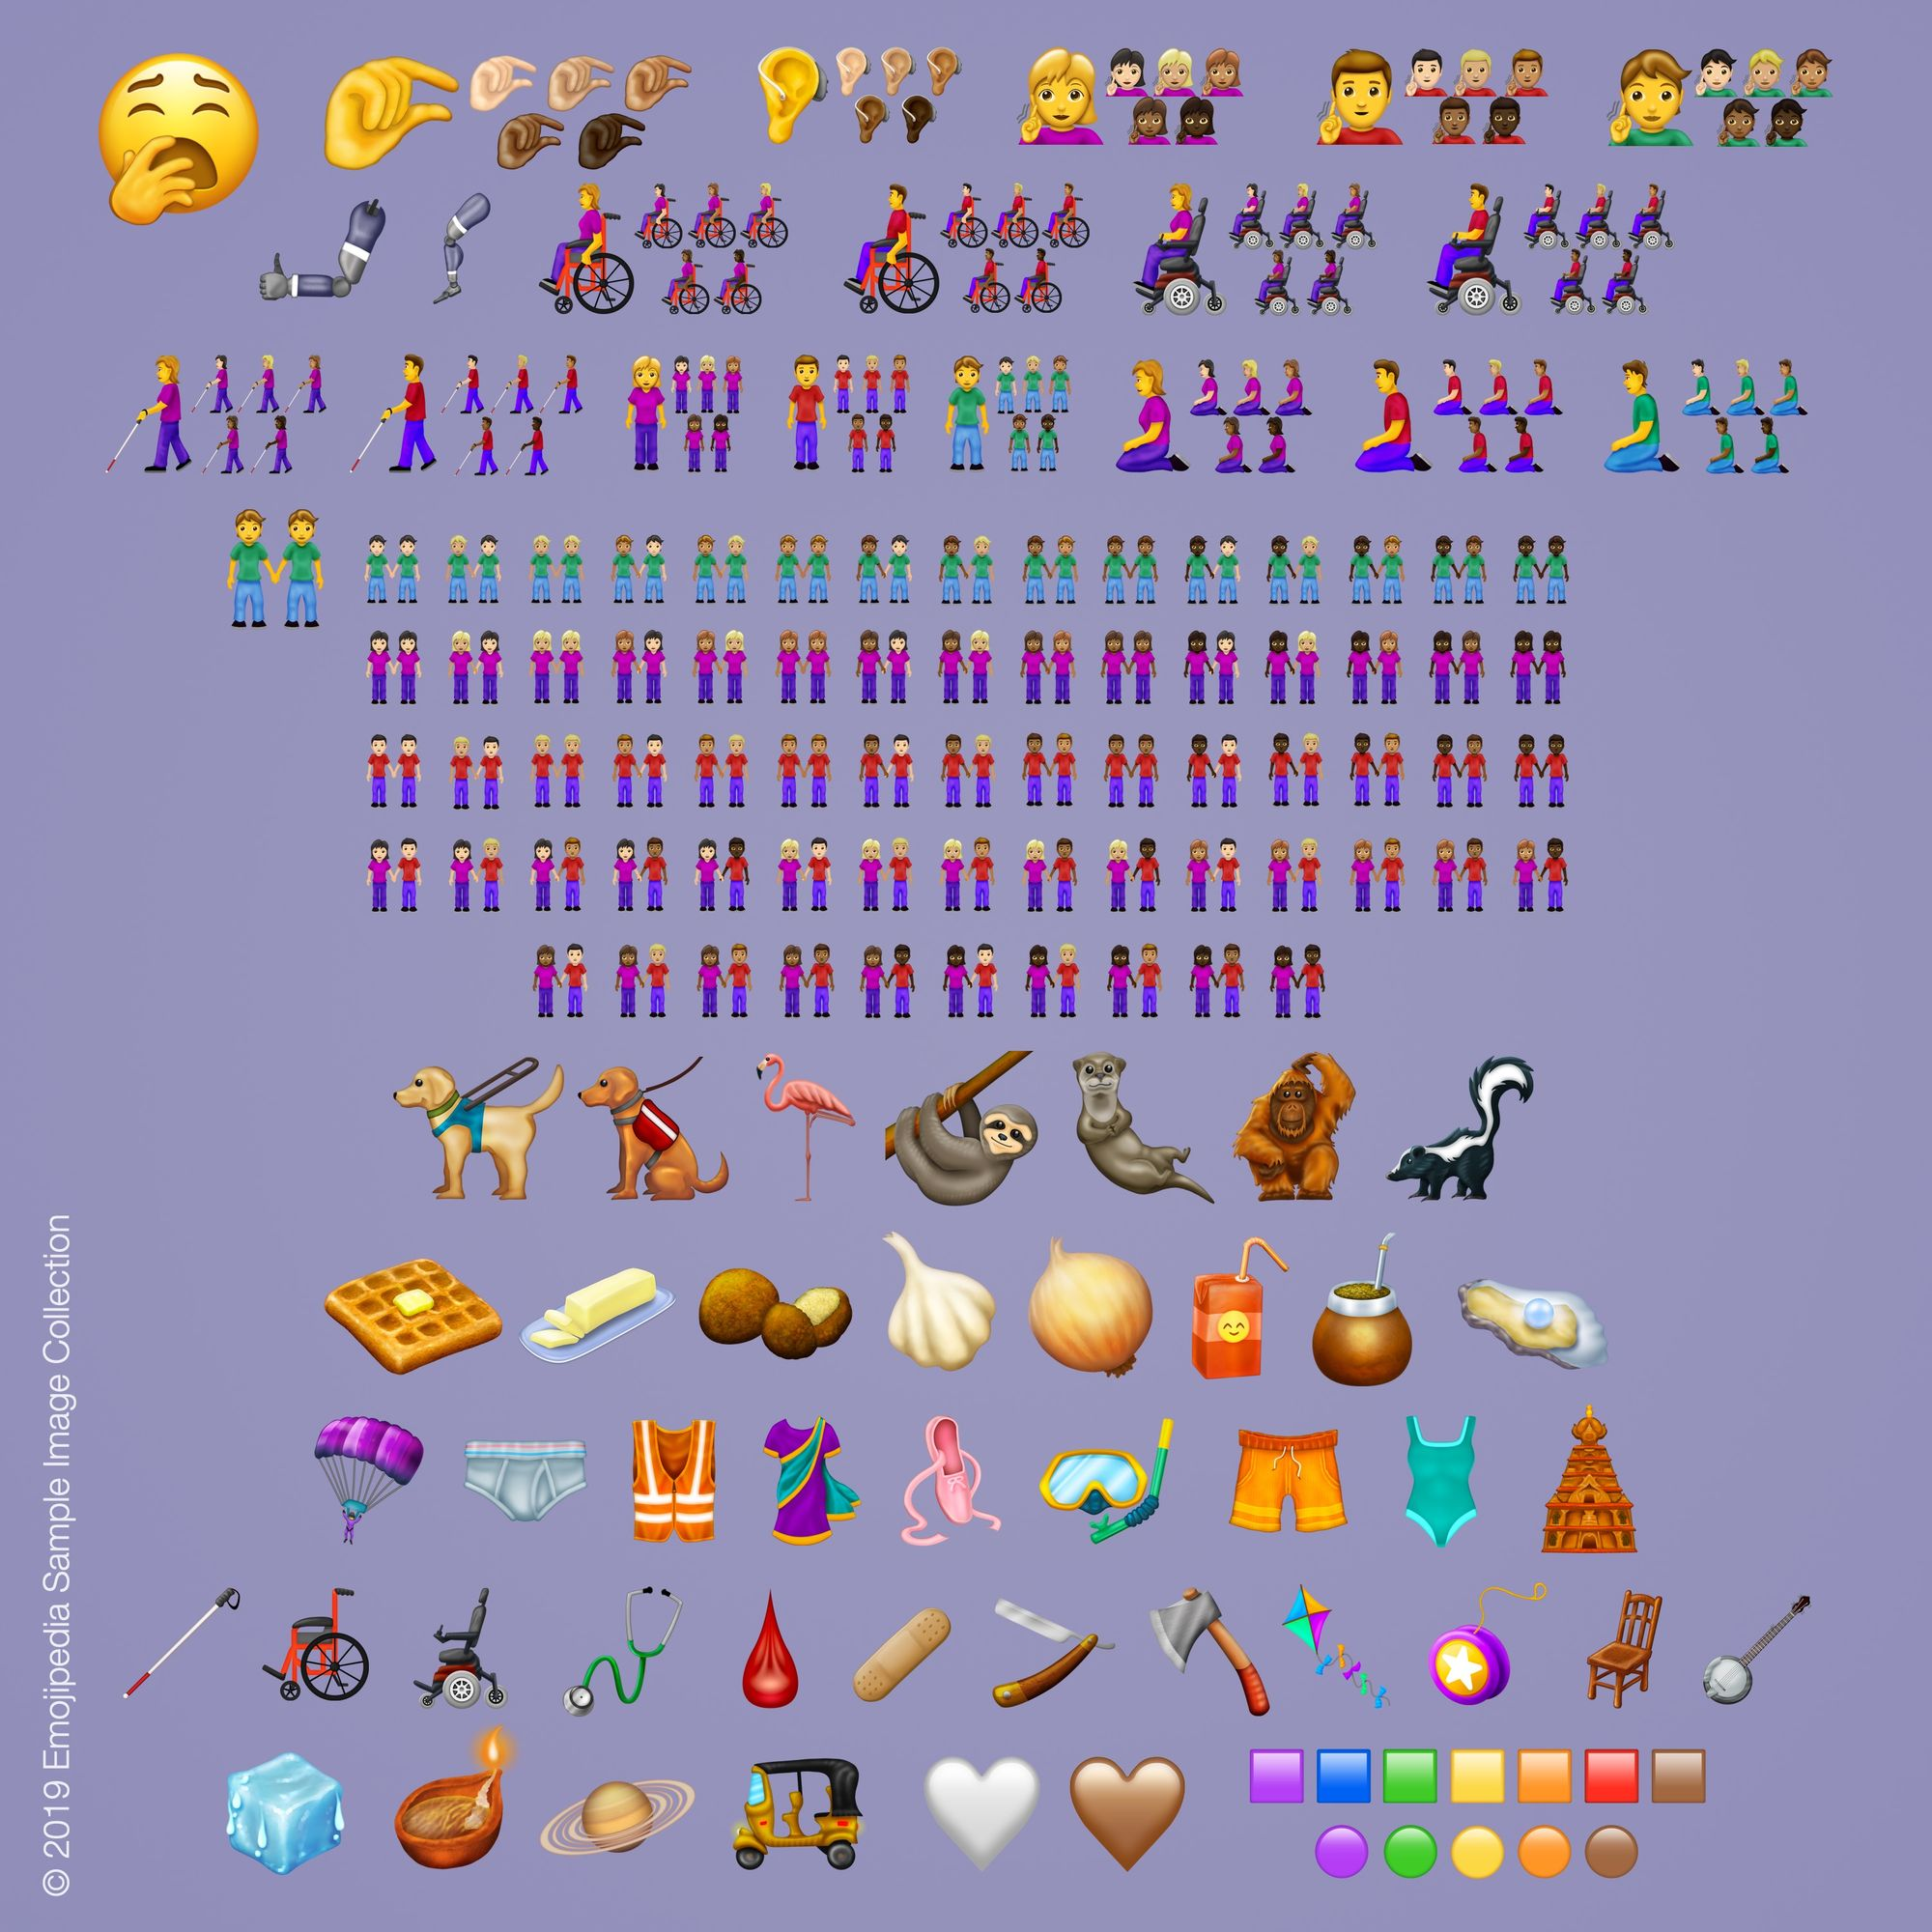 New 2019 Apple Emojis